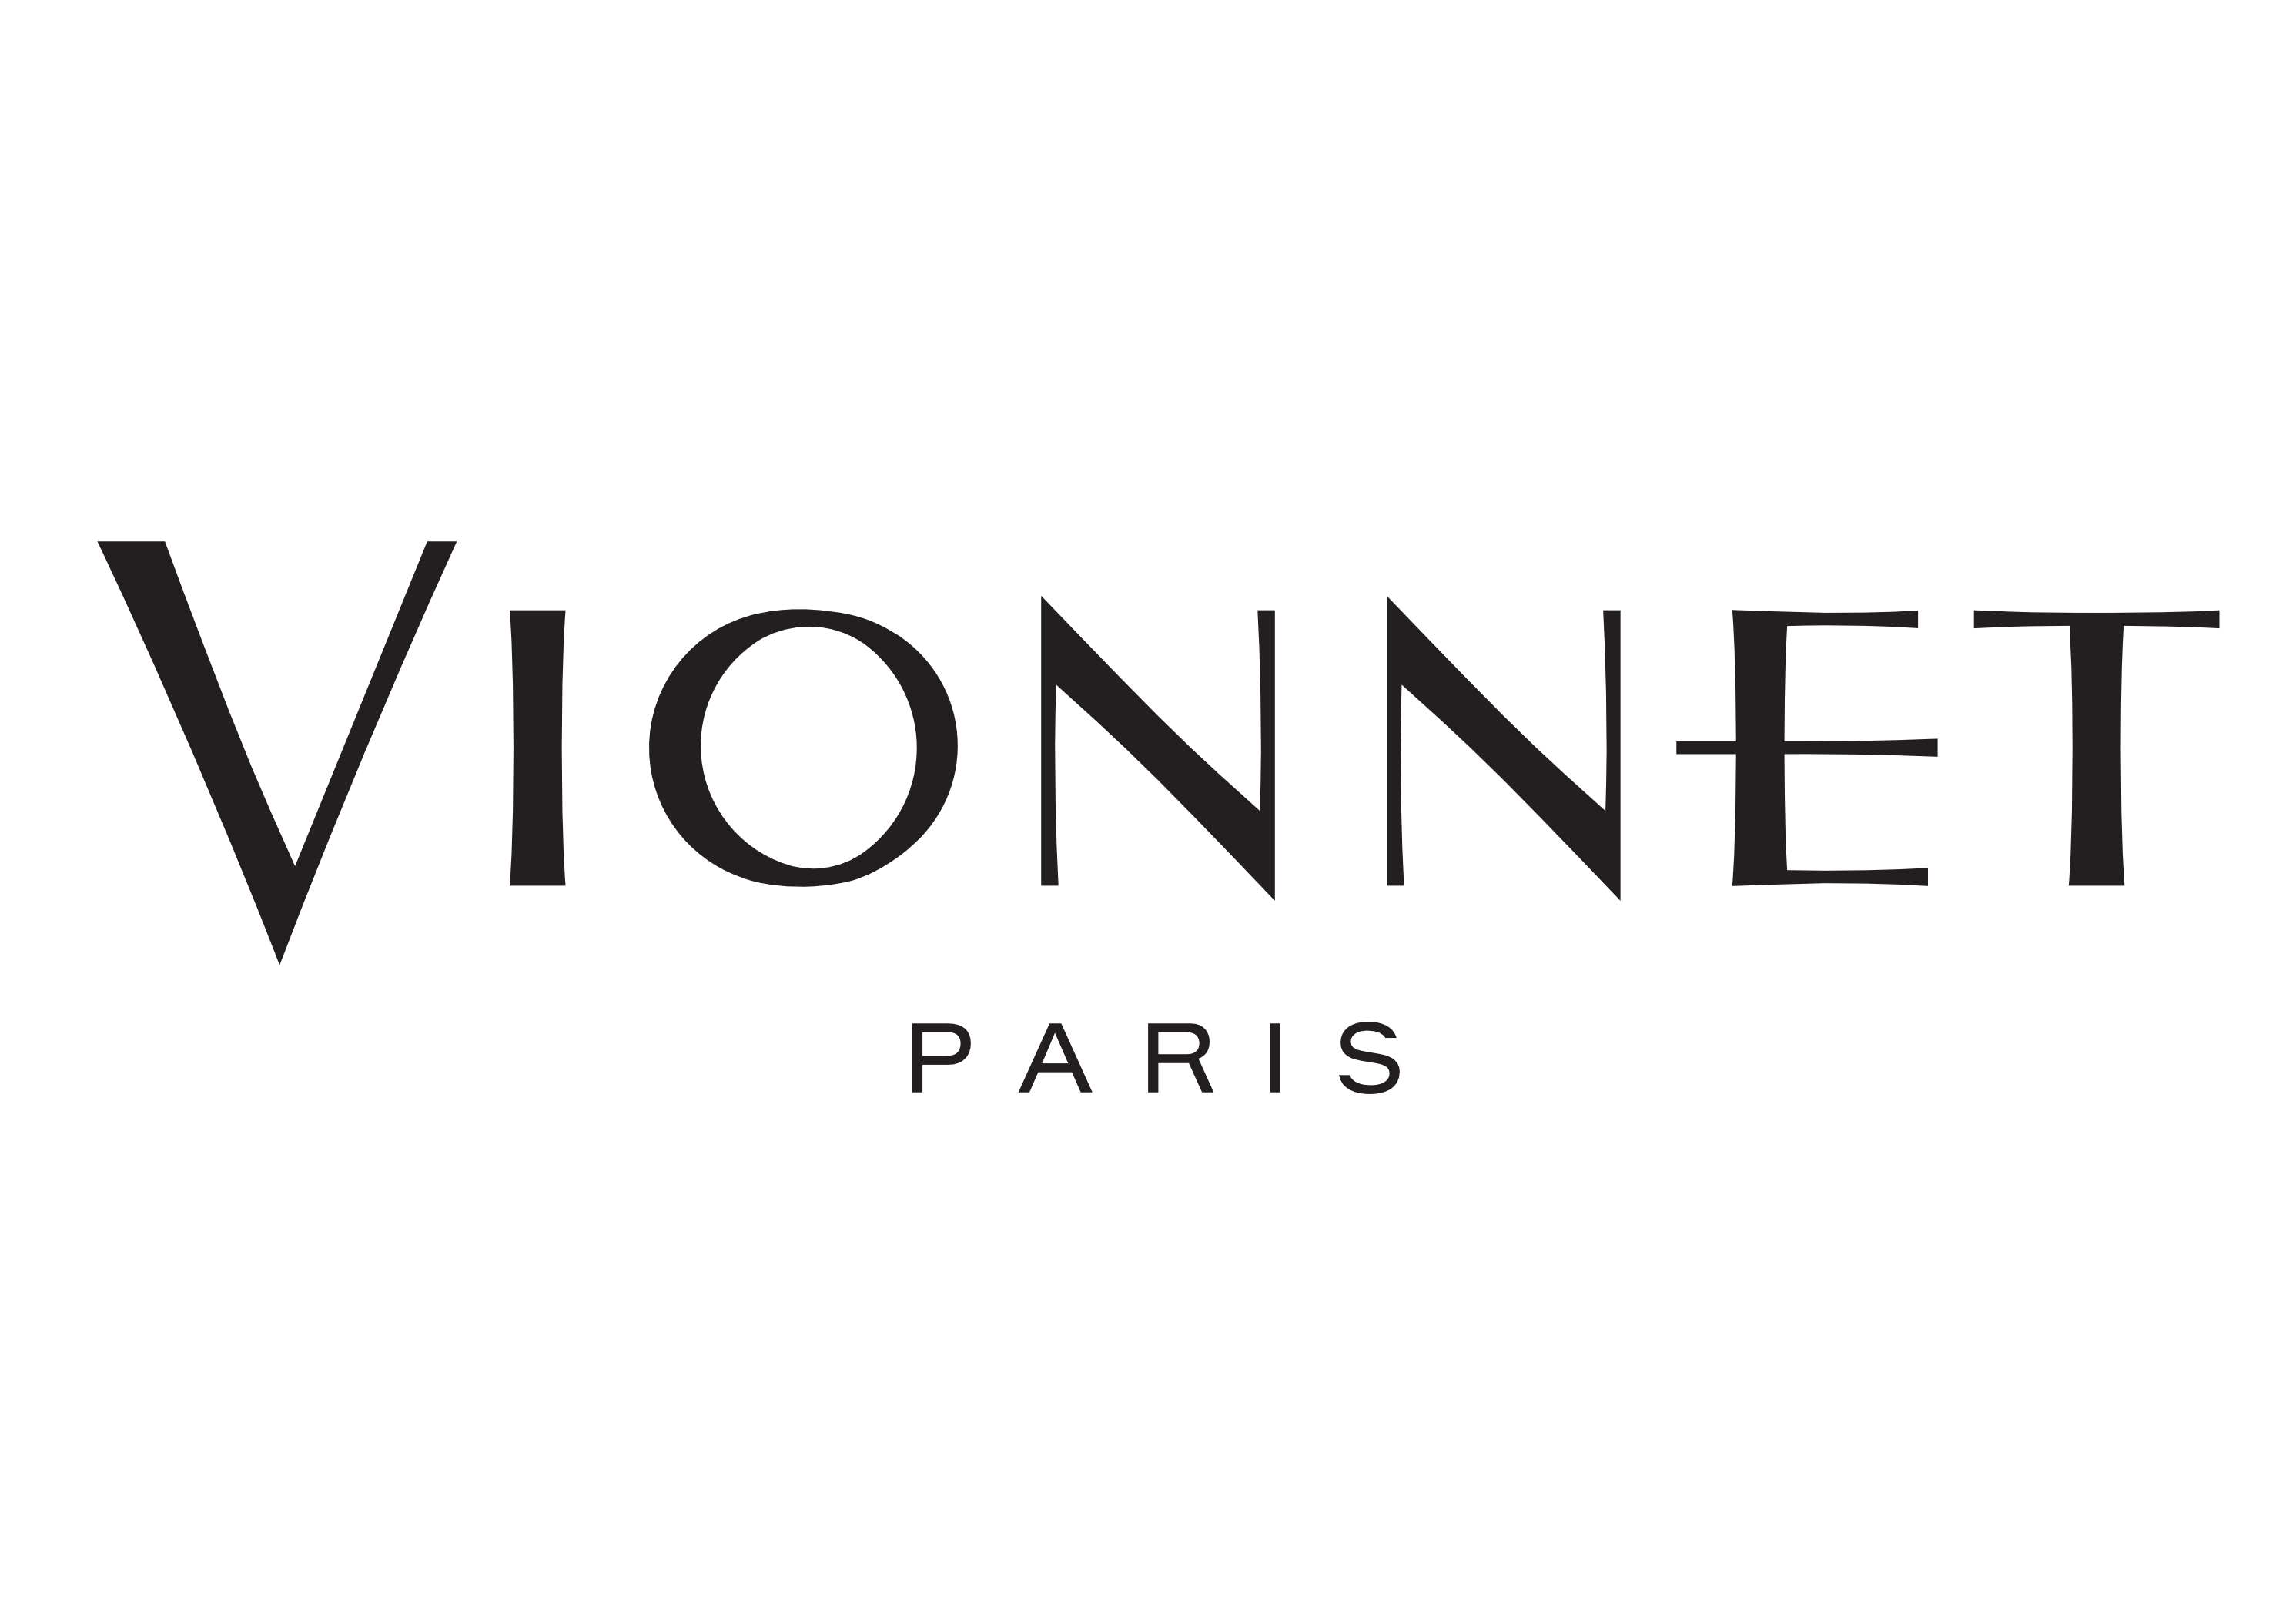 "{'liked': 0L, 'description': u'Madeleine Vionnet was a French fashion designer. Born in Loiret, France, Vionnet trained in London before returning to France to establish her first fashion house in Paris in 1912. Although it was forced to close in 1914 upon the outbreak of the First World War, it re-opened after the War and Vionnet became one of the leading designers of the inter-war period in France. Called the ""Queen of the bias cut"" and ""The architect among dressmakers"", Vionnet is best known today for her elegant Grecian-style dresses and for popularising the bias cut within the fashion world and is credited with inspiring a number of recent designers.', 'fcount': 1984, 'logo': u'https://d1lq6ohuxk085y.cloudfront.net/designer/vionnet-1470104224', 'viewed': 6076L, 'category': u'p', 'name': u'VIONNET', 'url': 'VIONNET', 'locname': u'VIONNET', 'mcount': 0, 'haswebsite': True}"